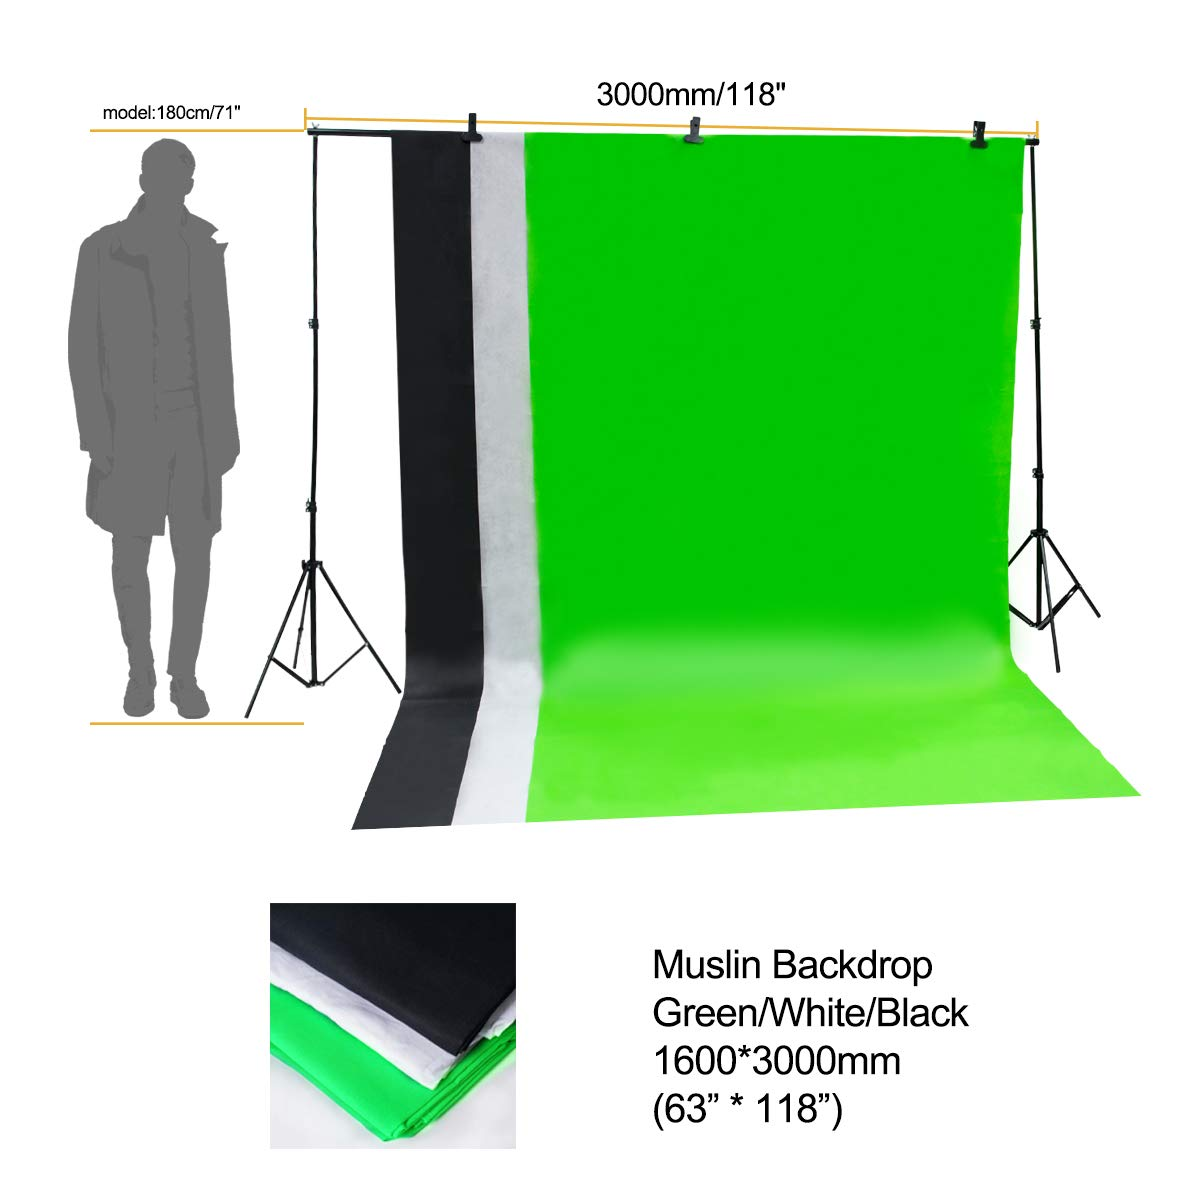 Wisamic Photography Video Studio Lighting Kit, Background Support System 10ft x 6.6ft/2MX3M with 3 Color Backdrop, 3 Umbrella, 3 Softbox, Continuous Lighting Kit for Photo Video Shooting Photography by Wisamic (Image #8)